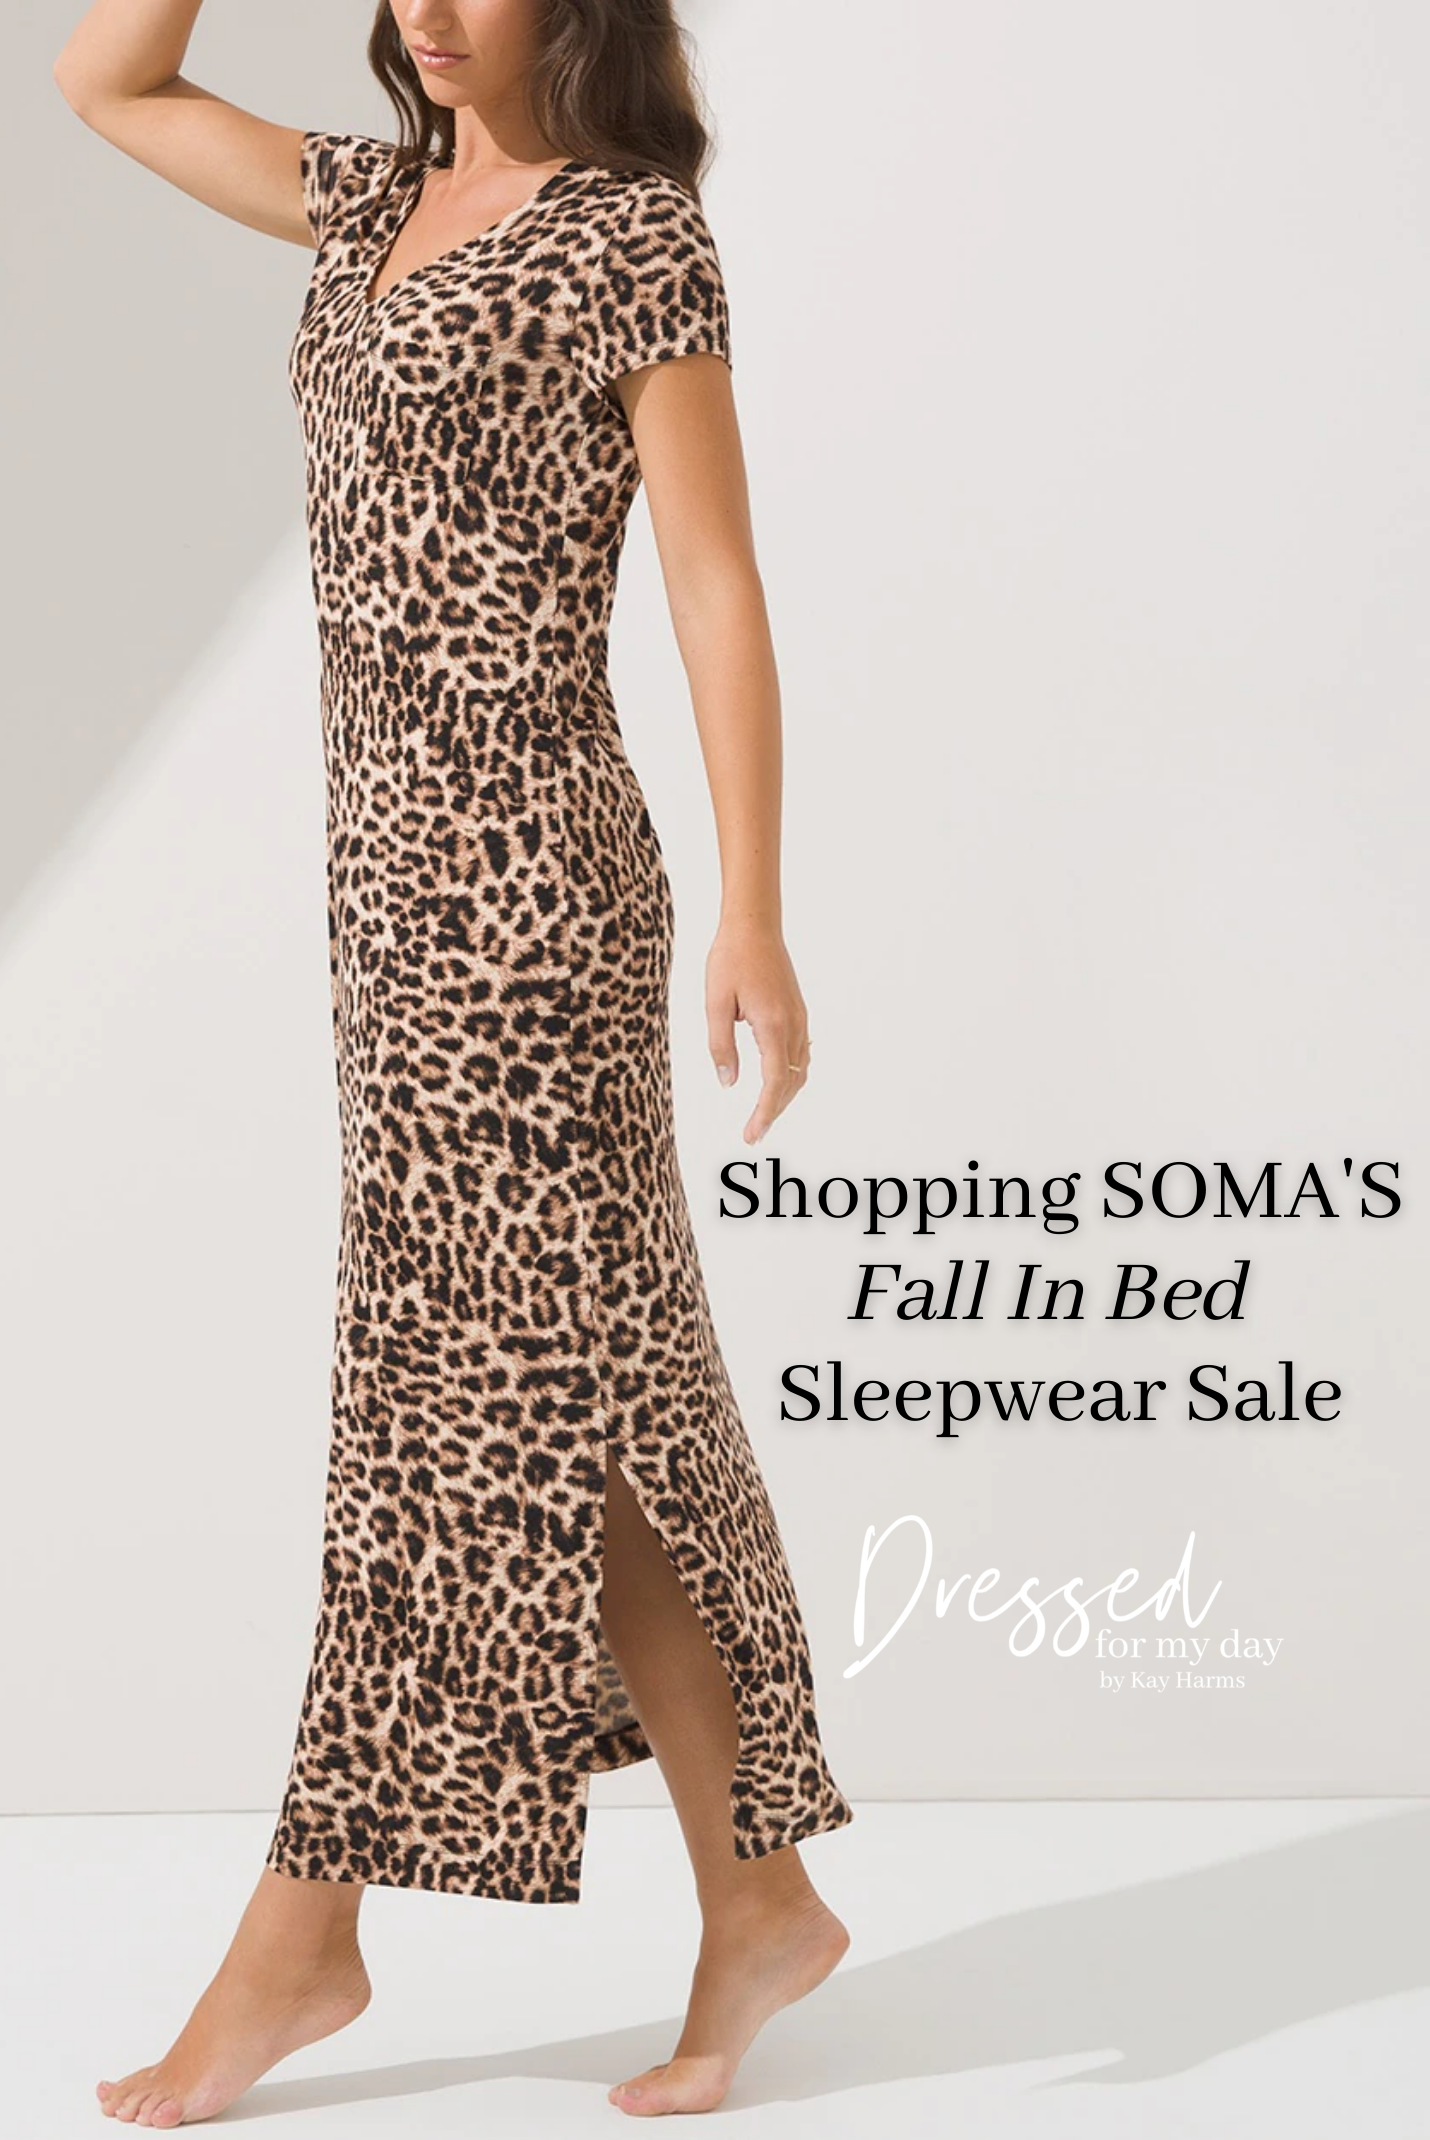 Shopping SOMA'S Fall In Bed Sleepwear Sale